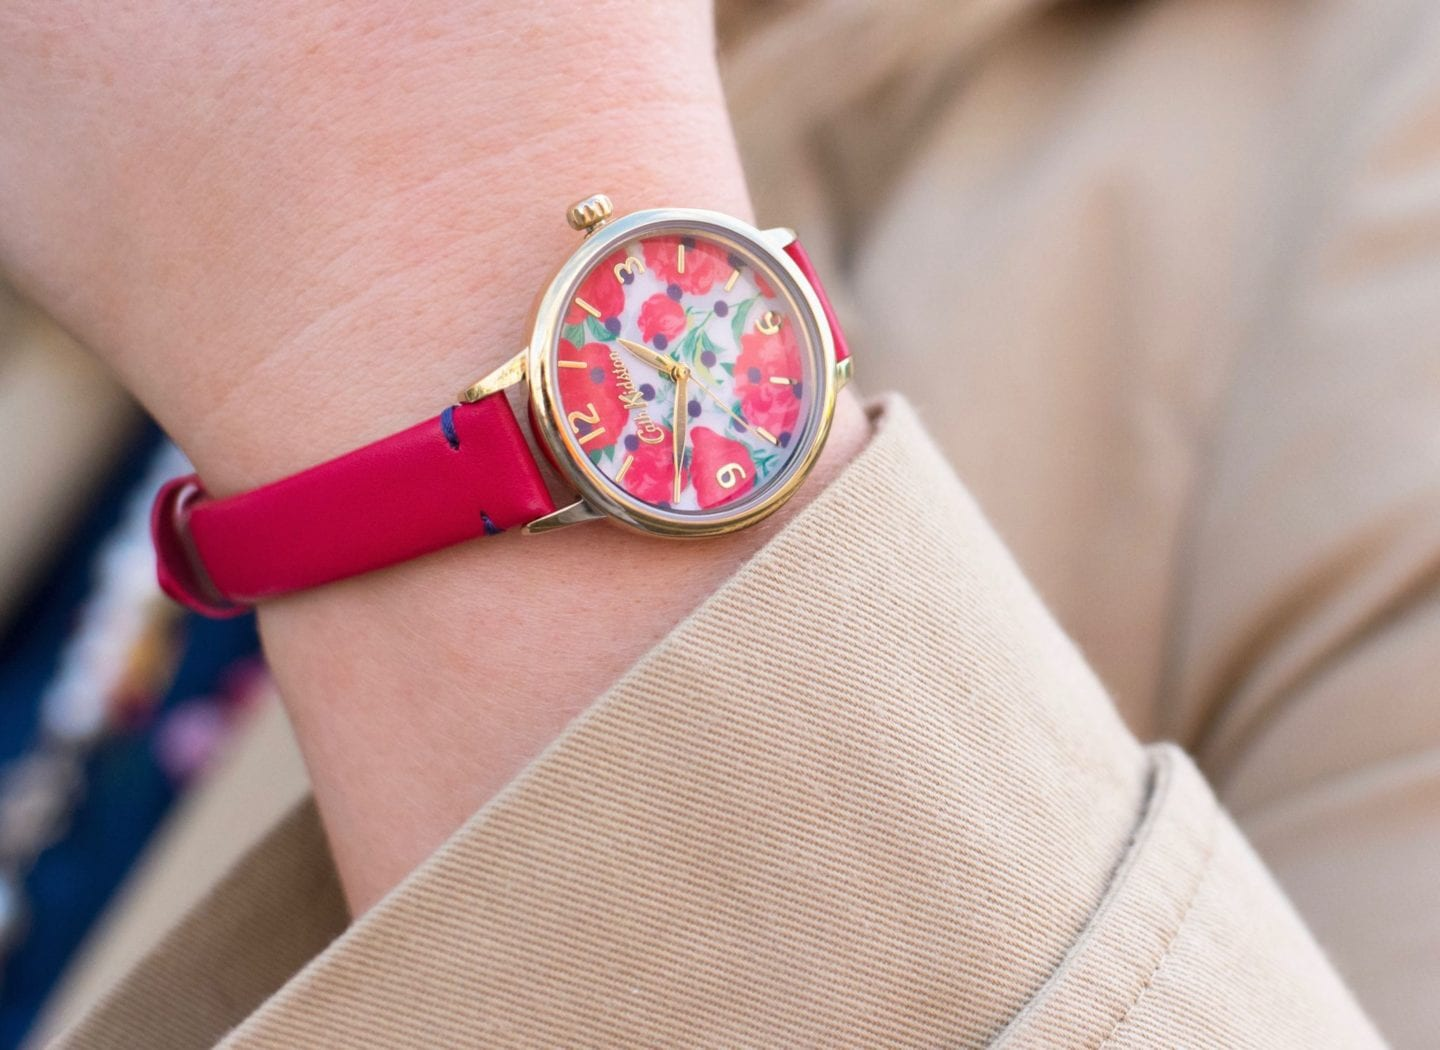 cath kidston watch red flowers floral